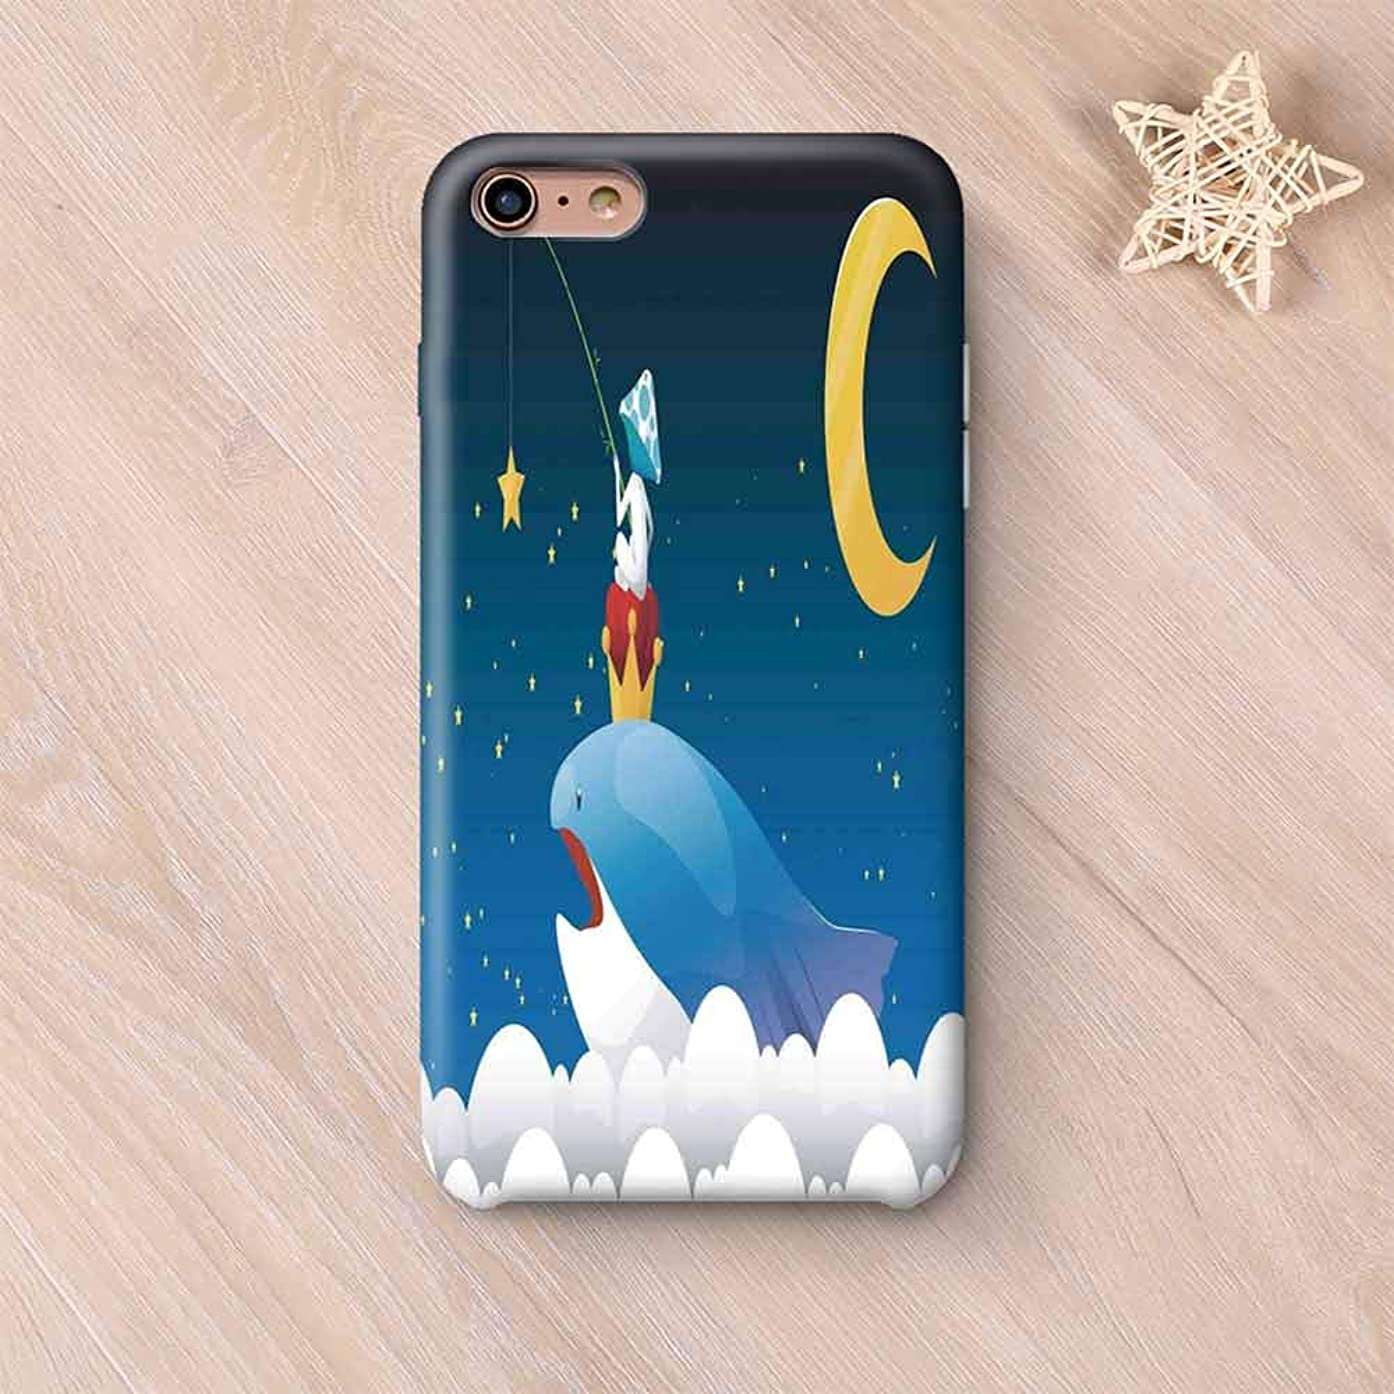 Whale Decor Wear Resisting Compatible with iPhone Case,King Whale on Top of Night Clouds with Stars and Moon with Child Sitting on Compatible with iPhone 7/8,iPhone 6 Plus / 6s Plus